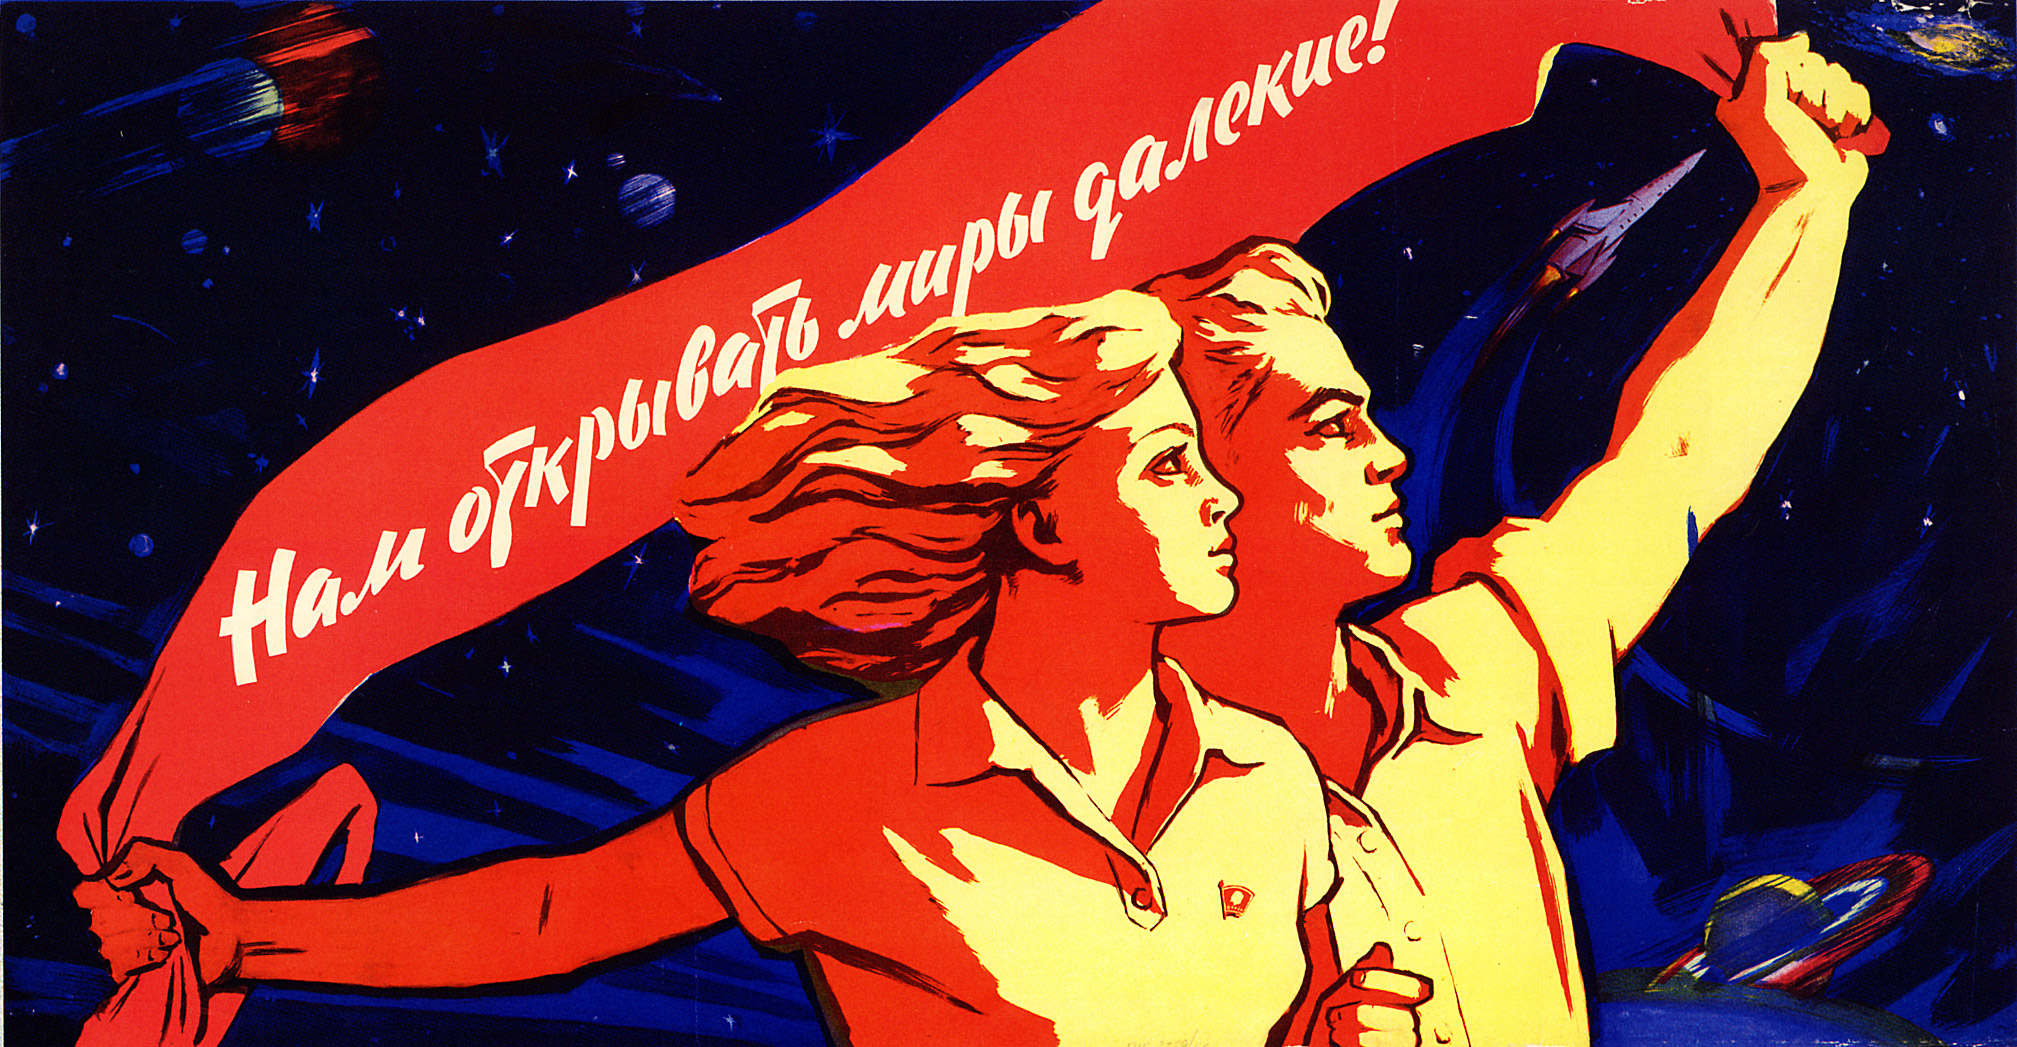 5 Soviet Space Programs That Prove Russia Was Insane